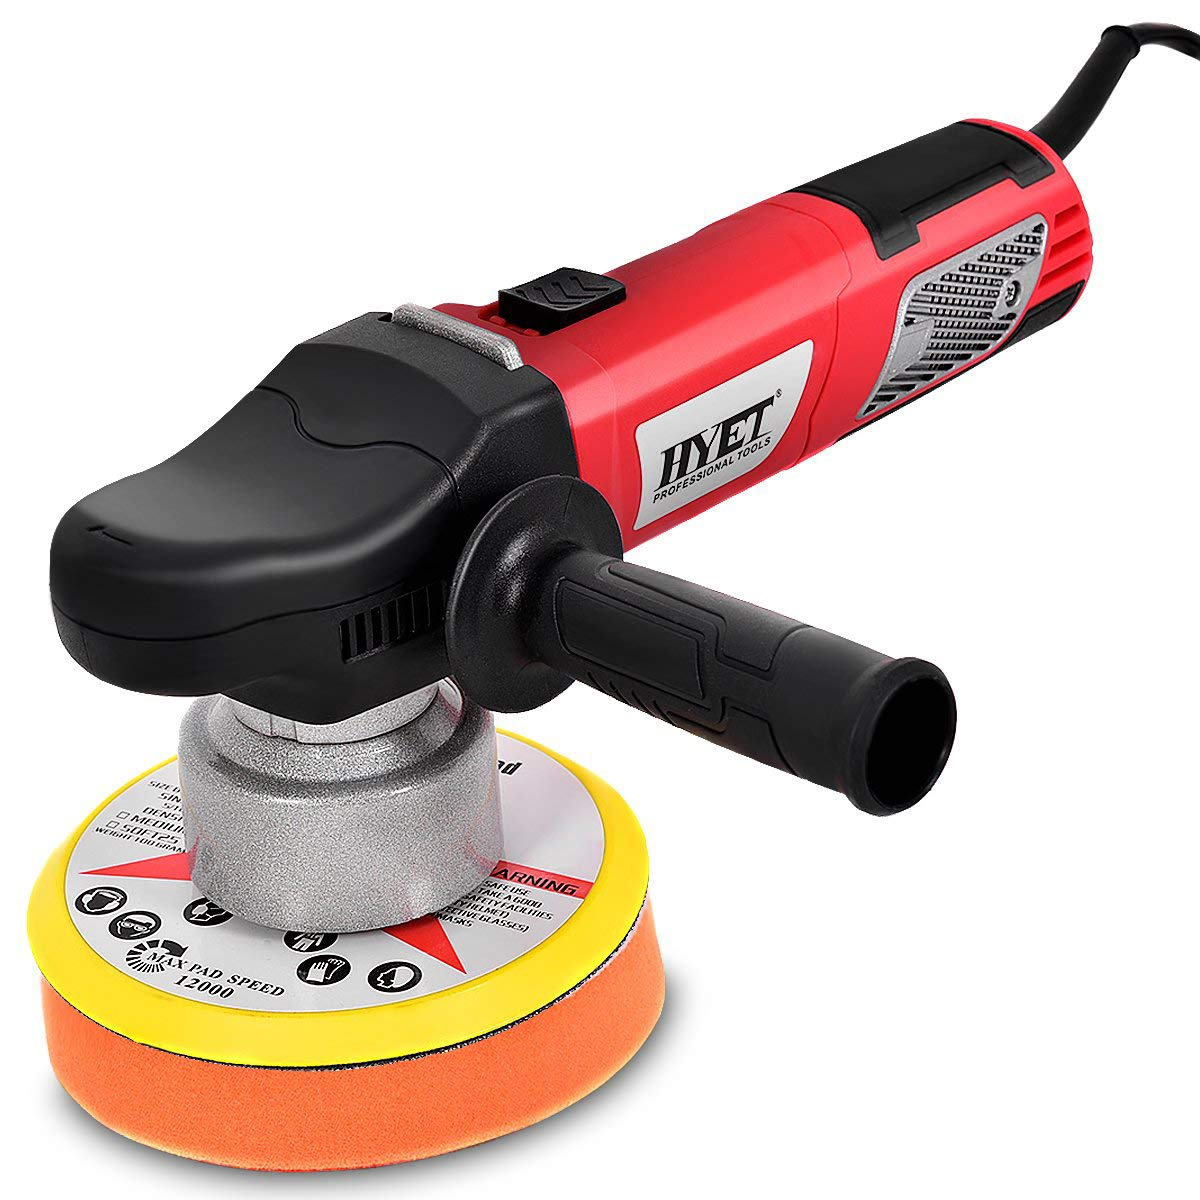 Goplus orbital sander featured image